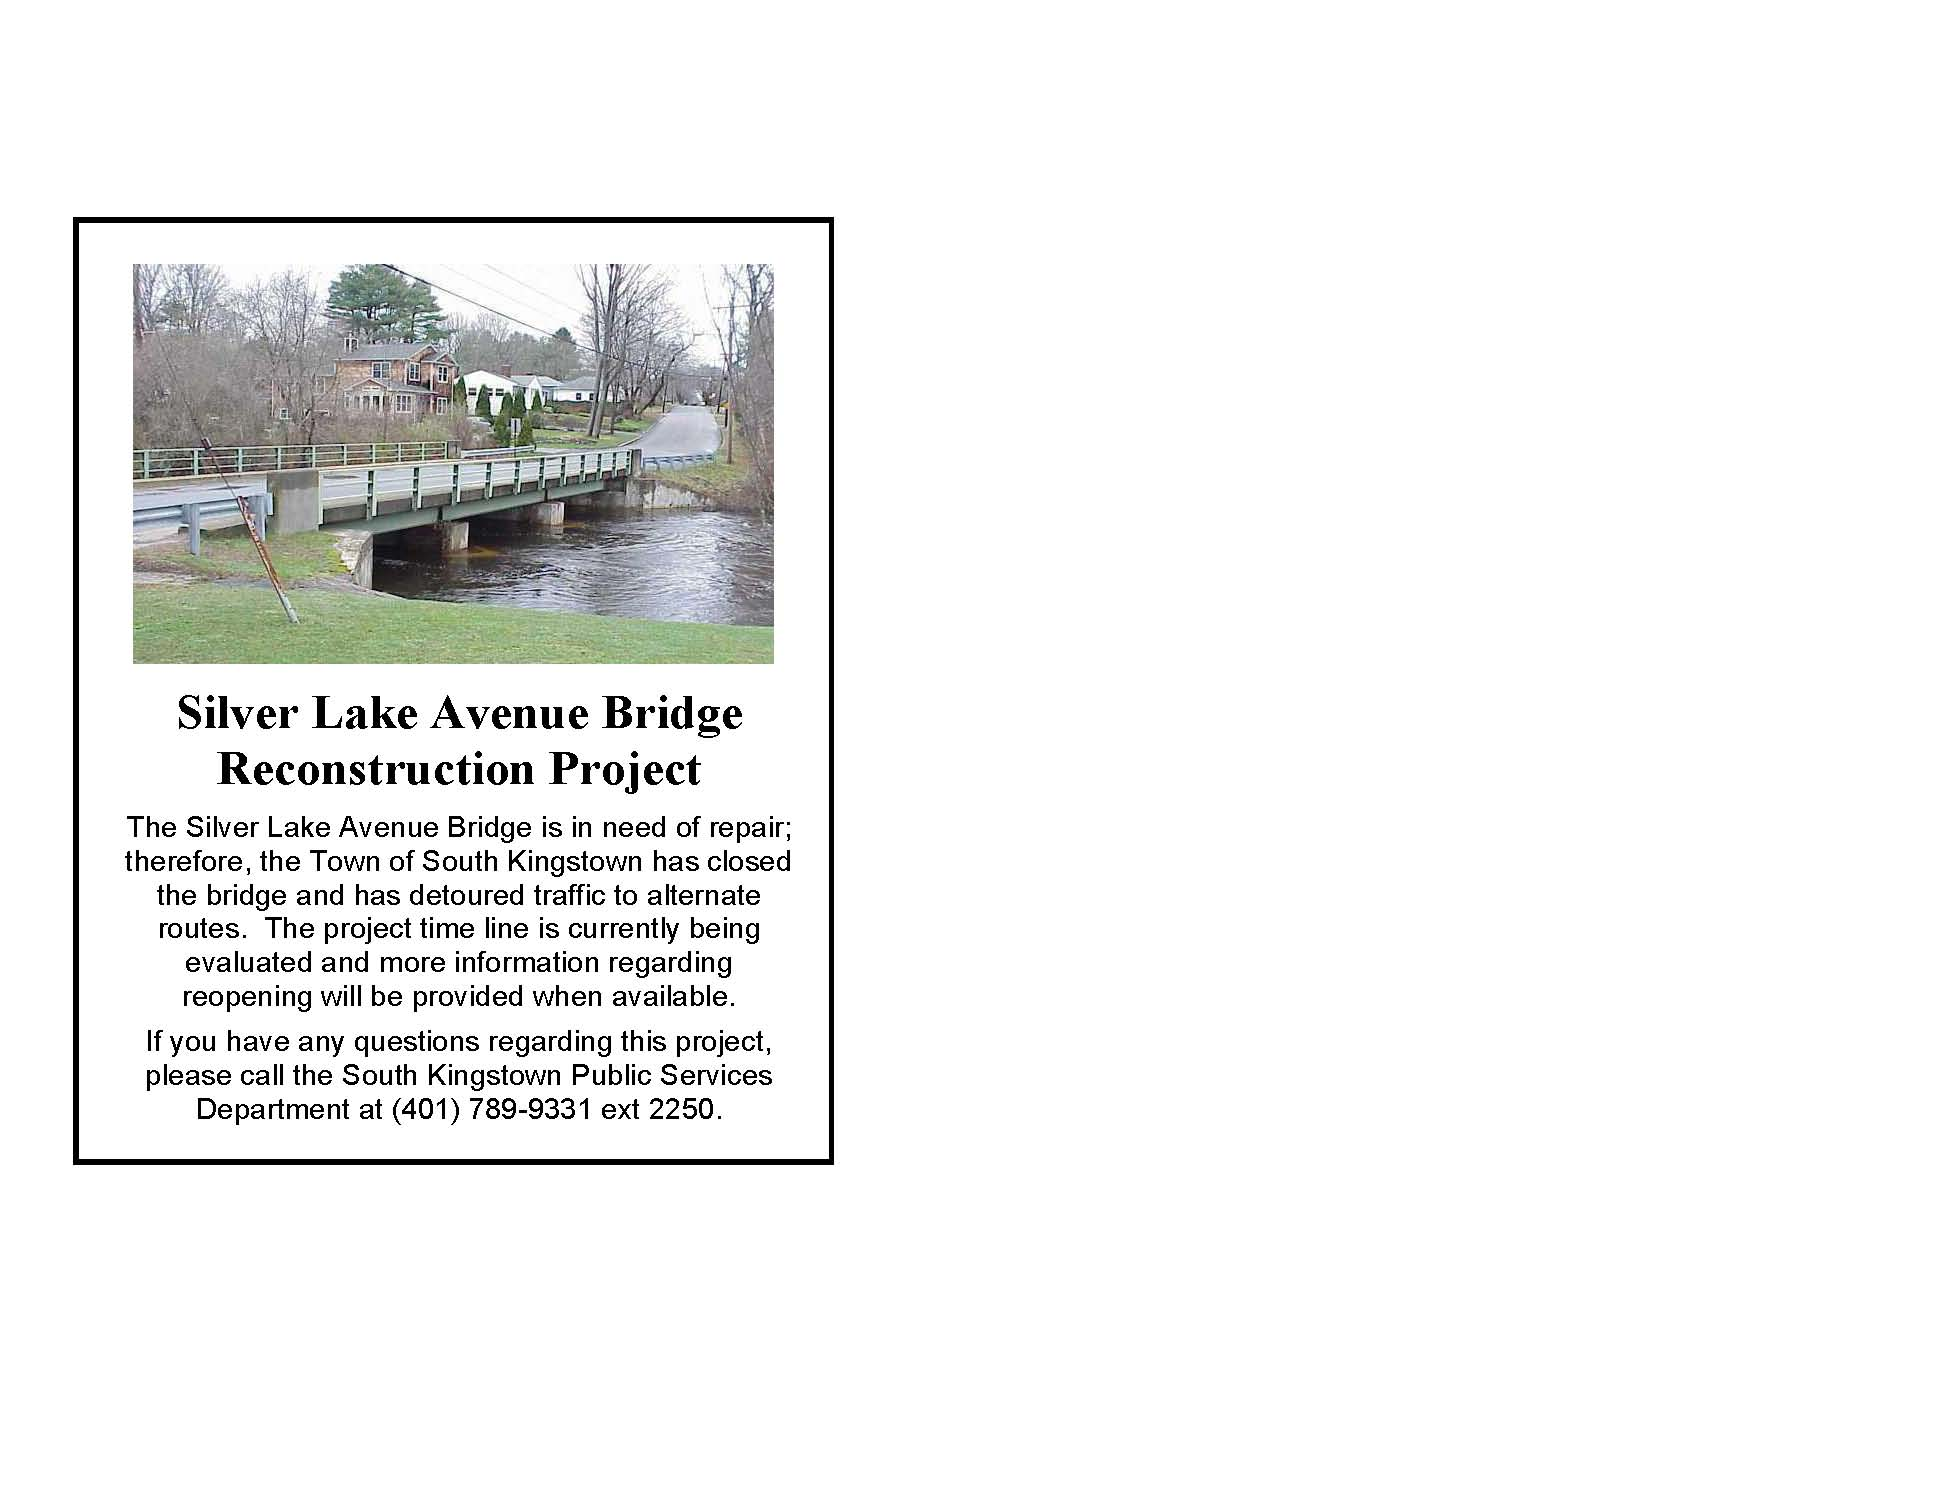 Silver Lake Bridge Closure Notice 2018